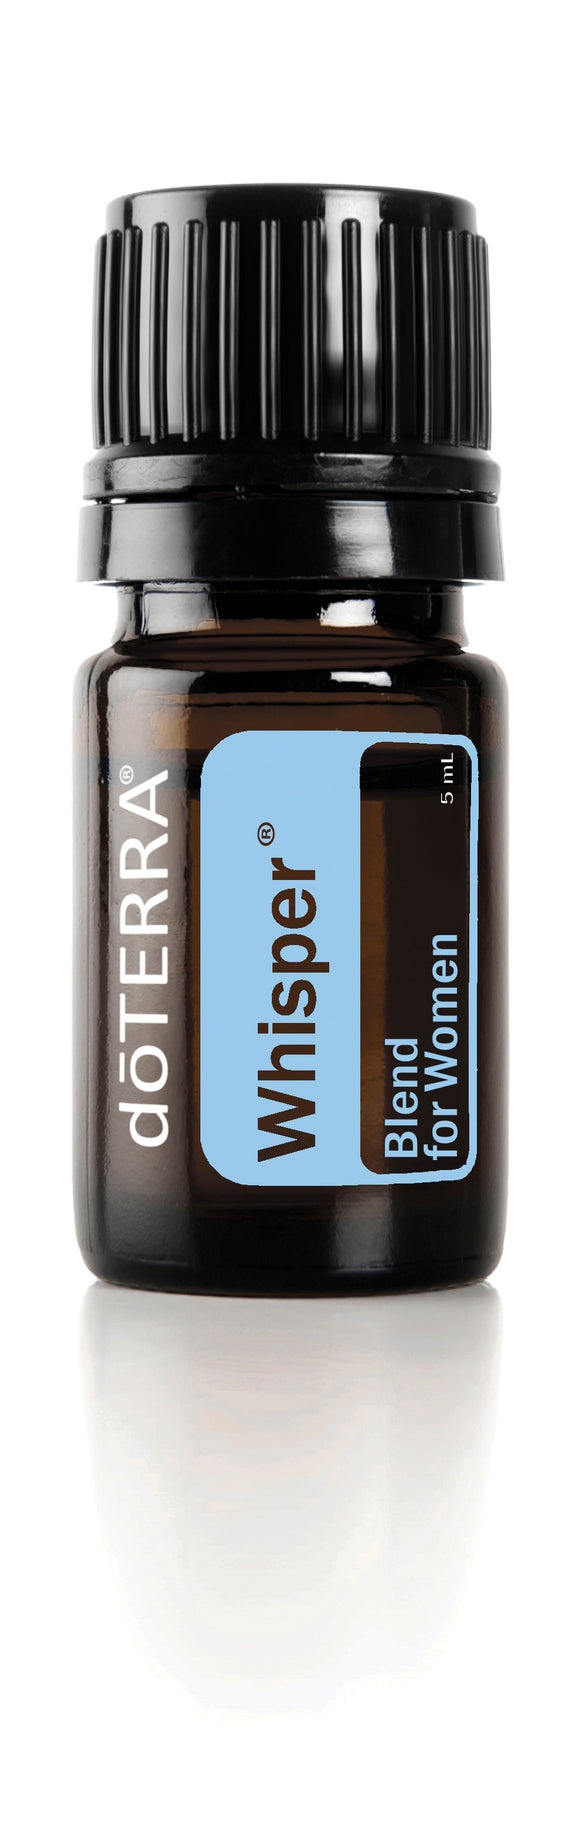 dōTERRA Whisper Blend 5ml - CUSTOM AND ESSENTIALS